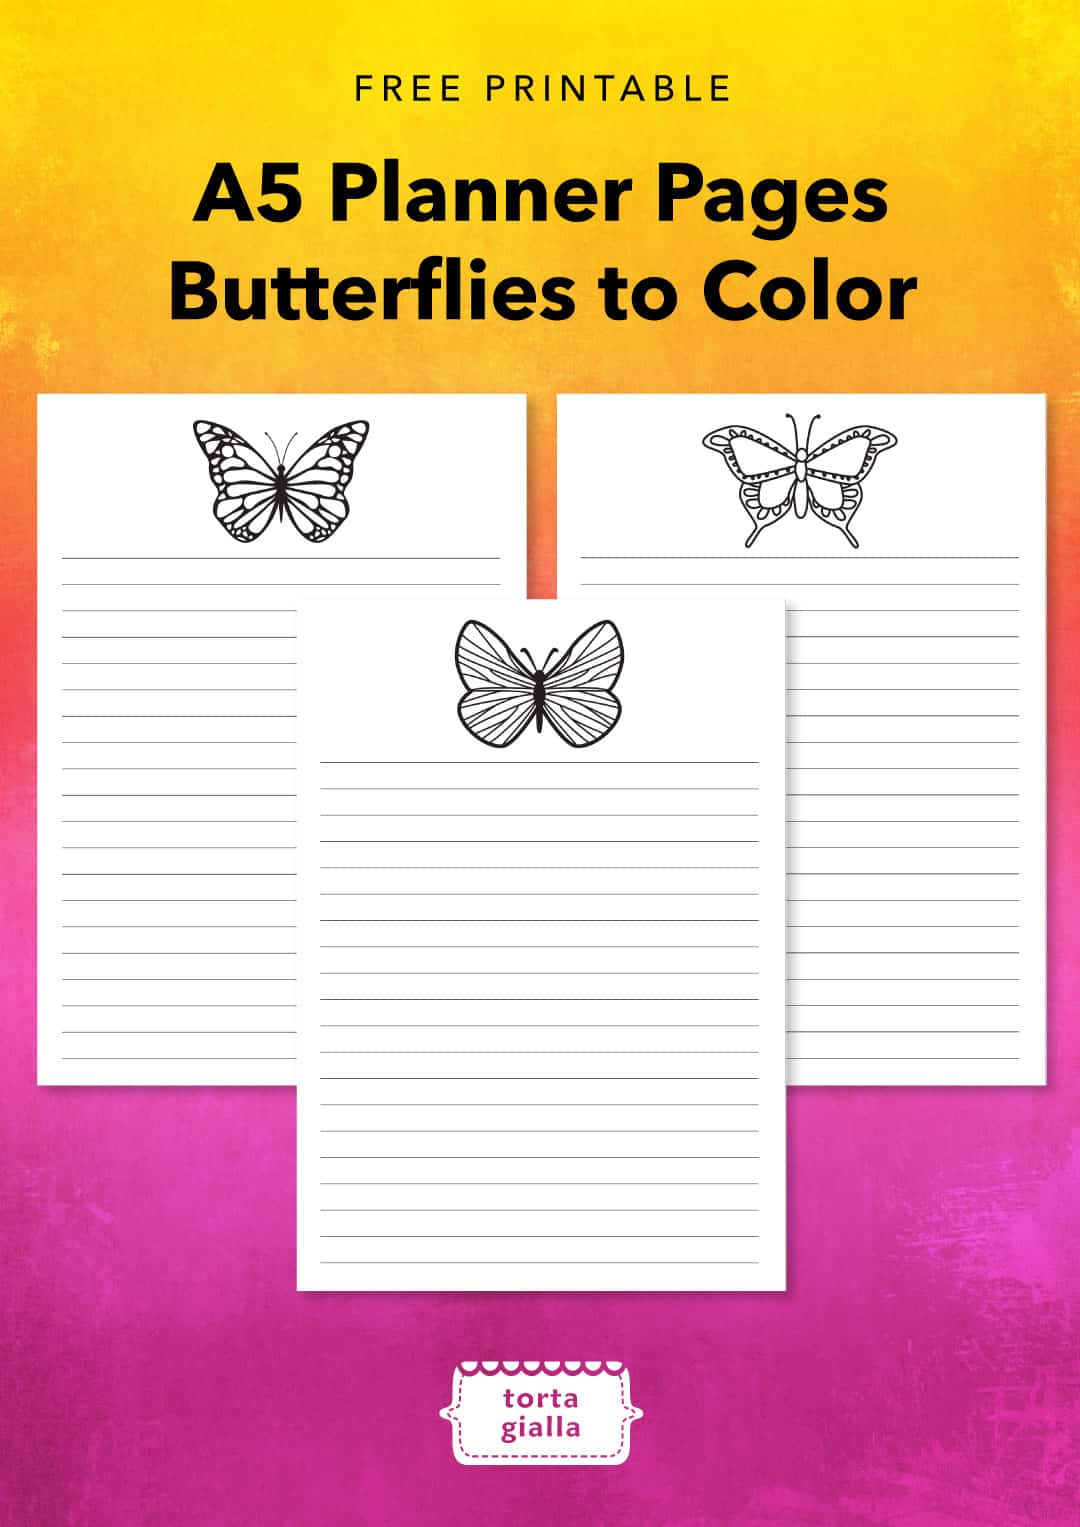 Free Printable A5 Planner Pages Butterflies To Color Tortagialla